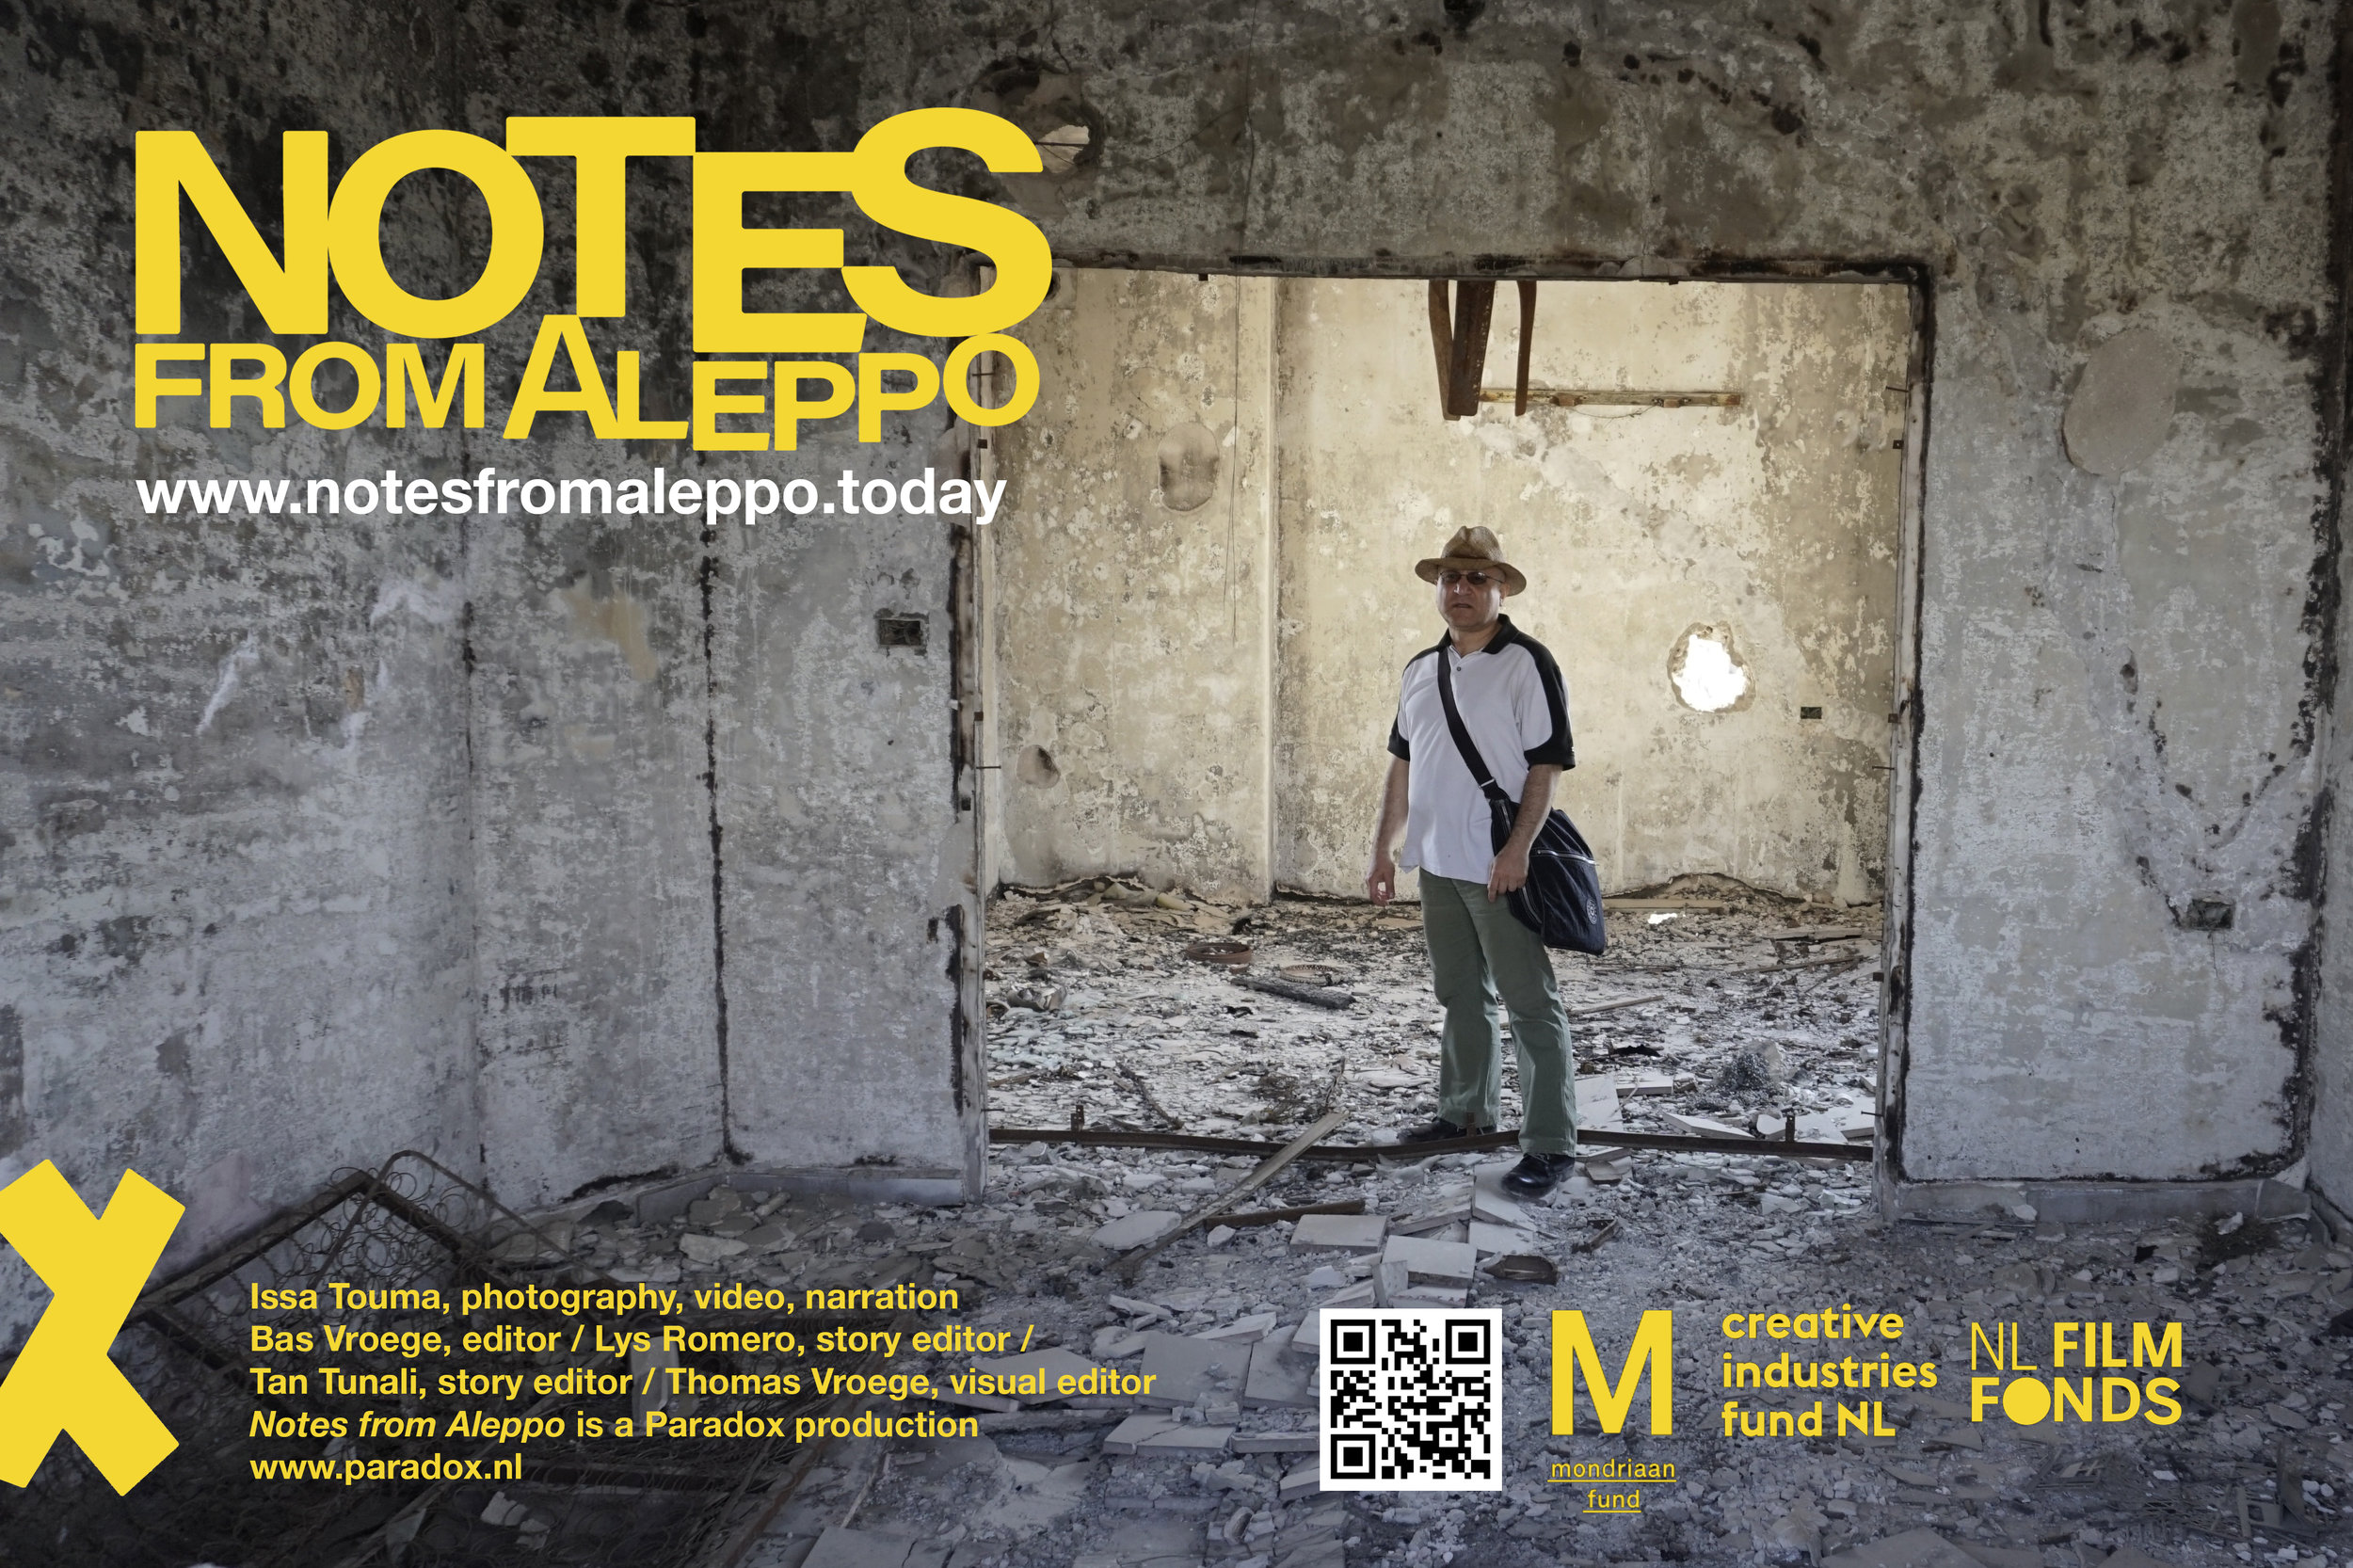 06_Wallpaper_Notes From Aleppo_Paradox.jpg